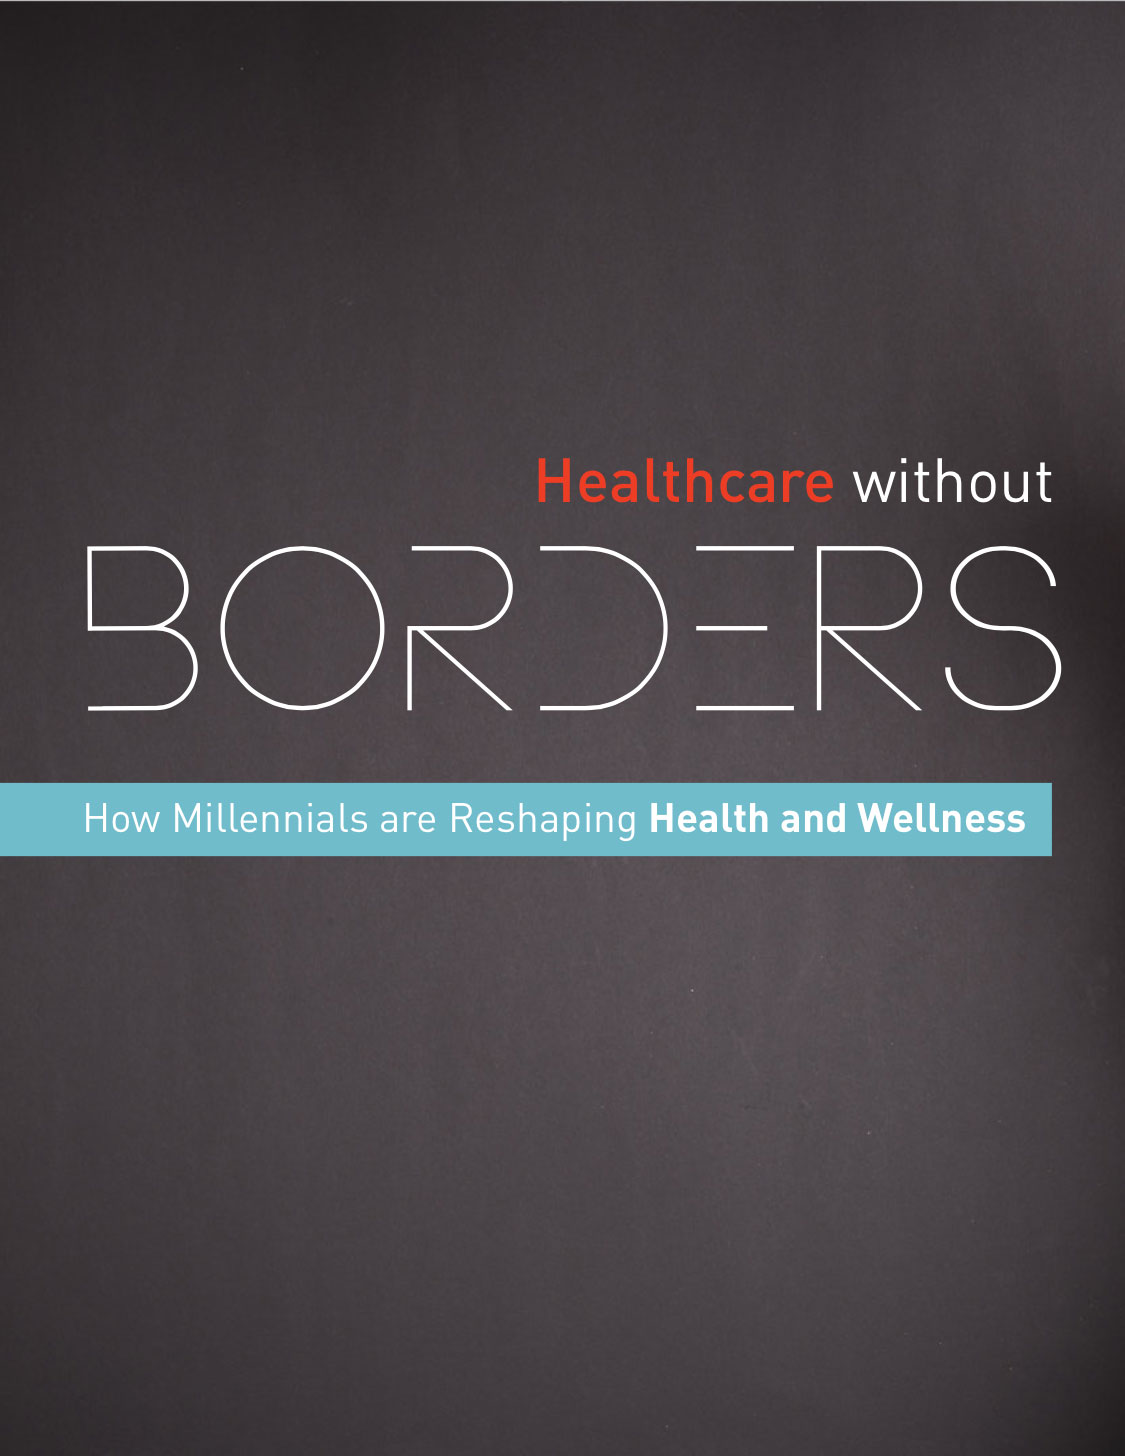 Healthcare without Borders